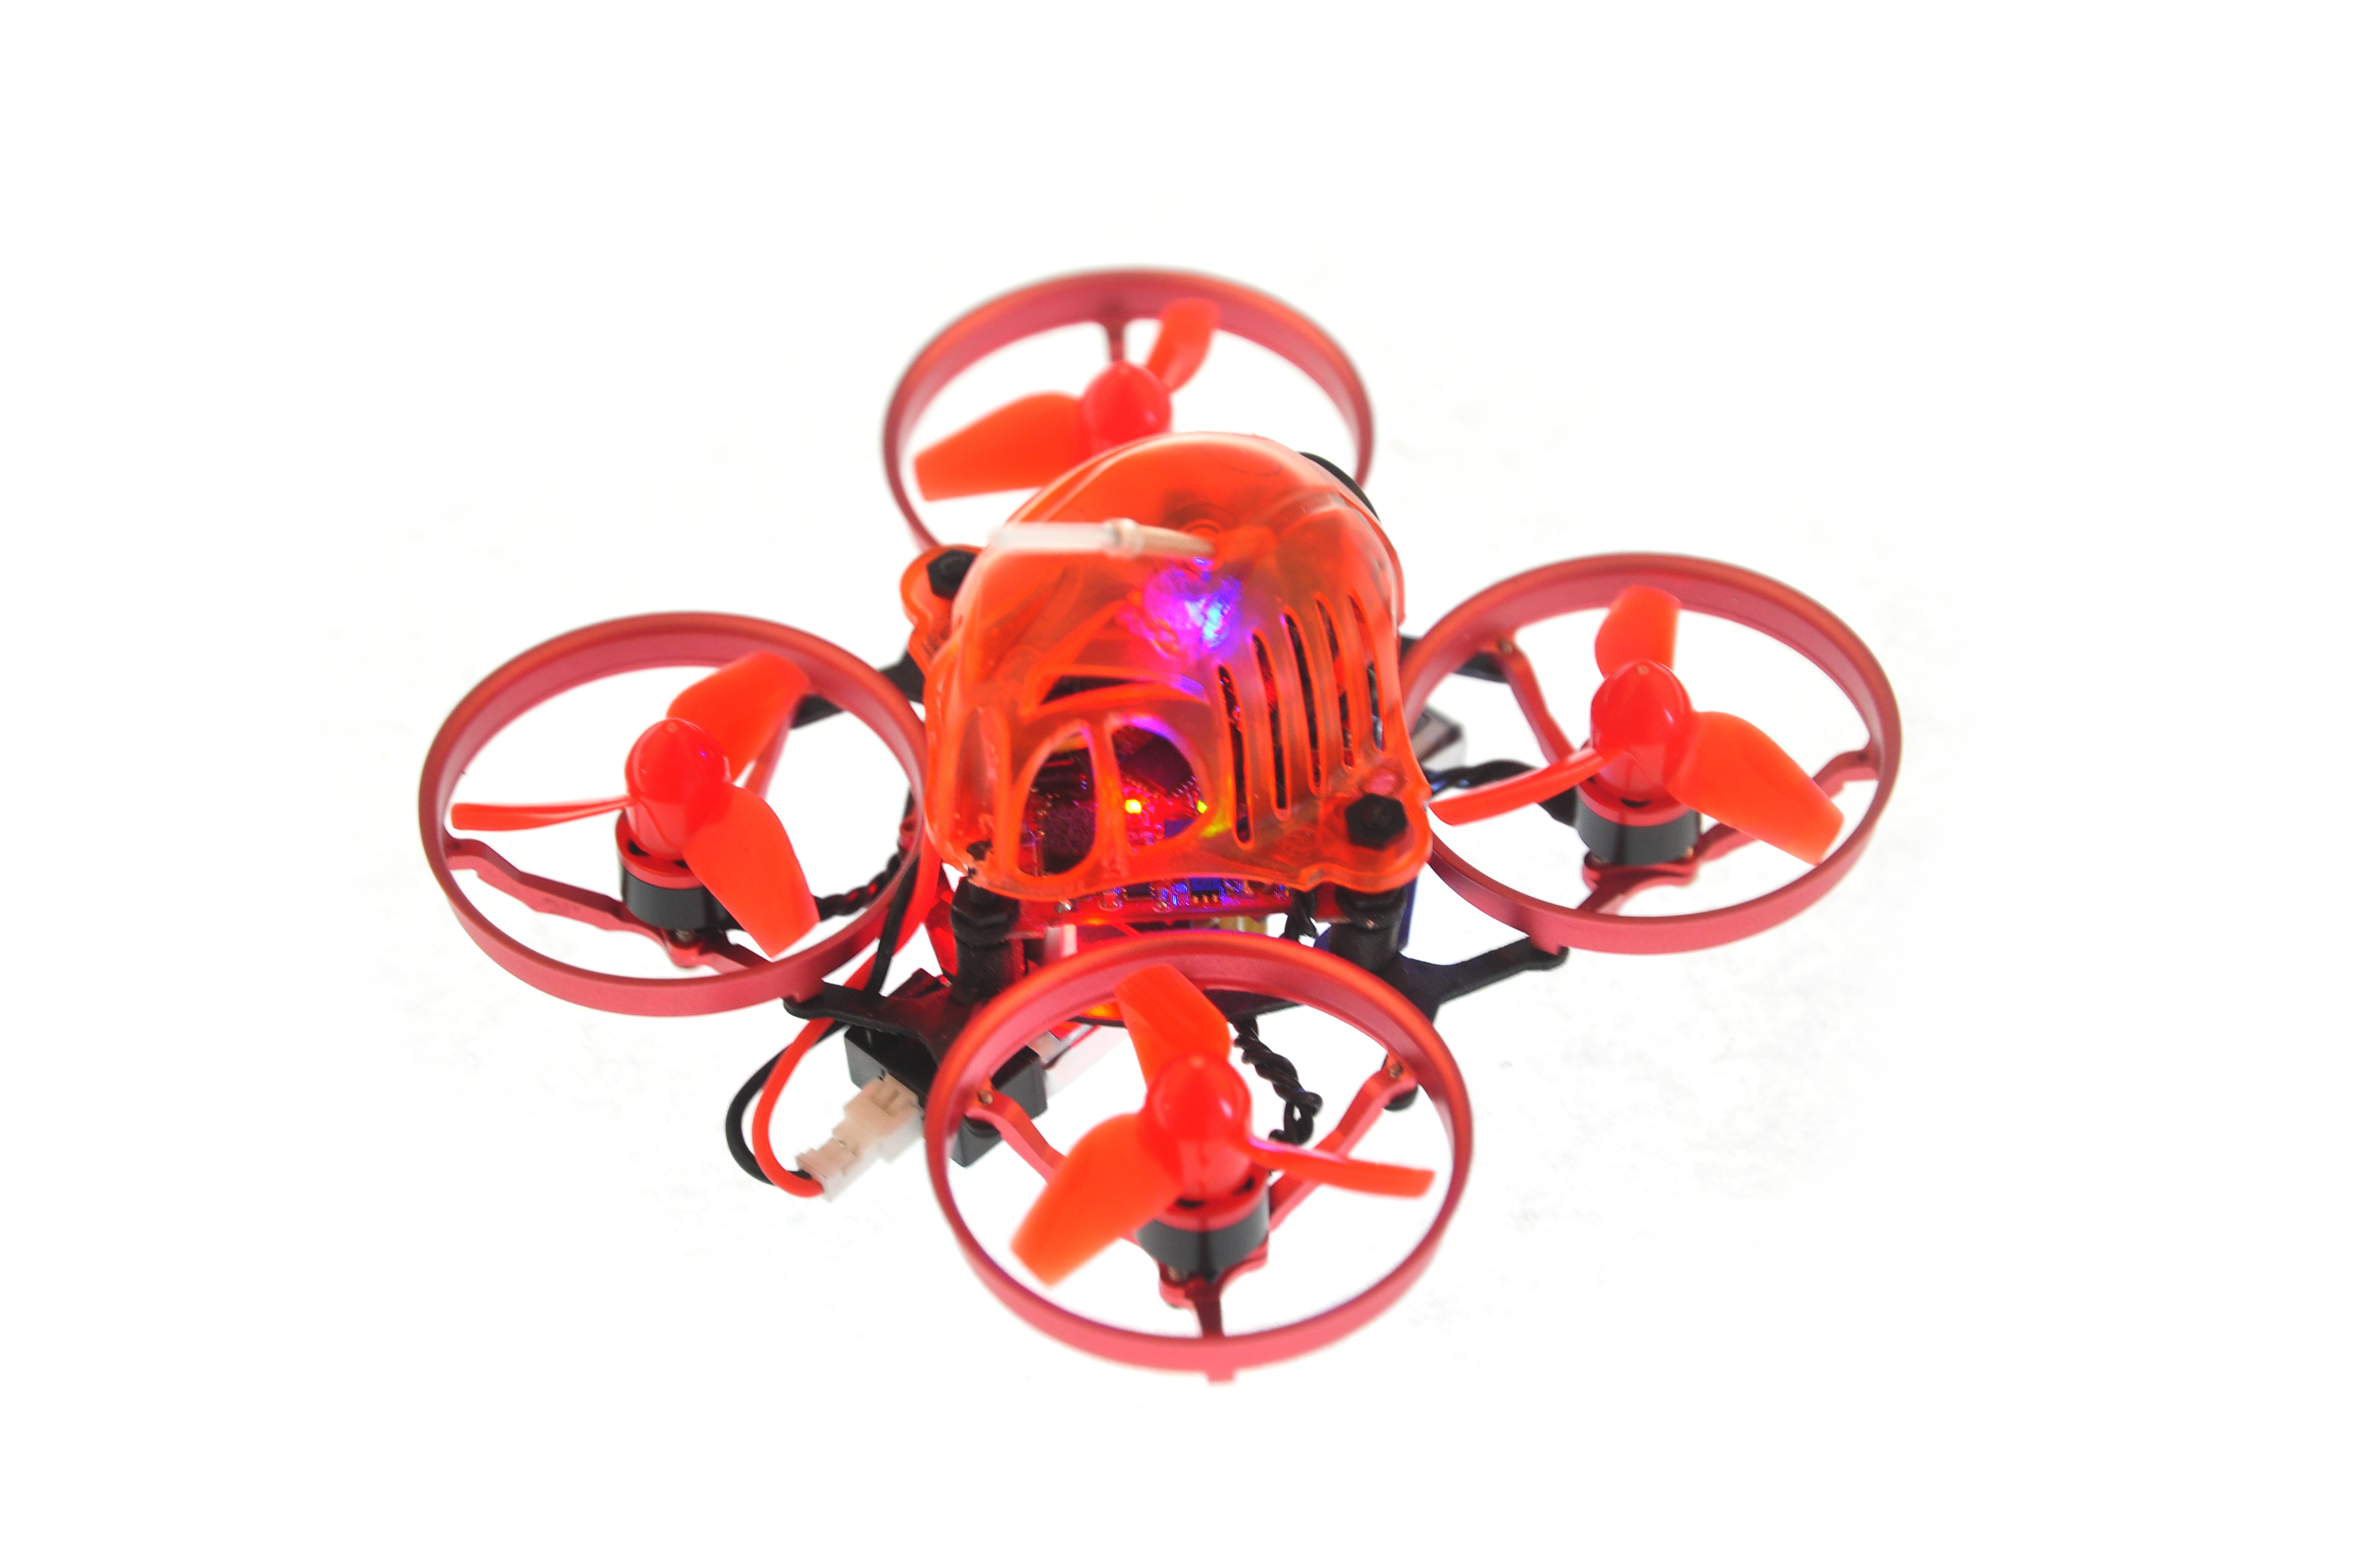 купить Snapper6 1S Brushless Whoop Racer Drone BNF 5.8G 48CH 700TVL Camera F3 Built-in OSD 65mm Micro FPV Racing RC Drone Quadcopter онлайн